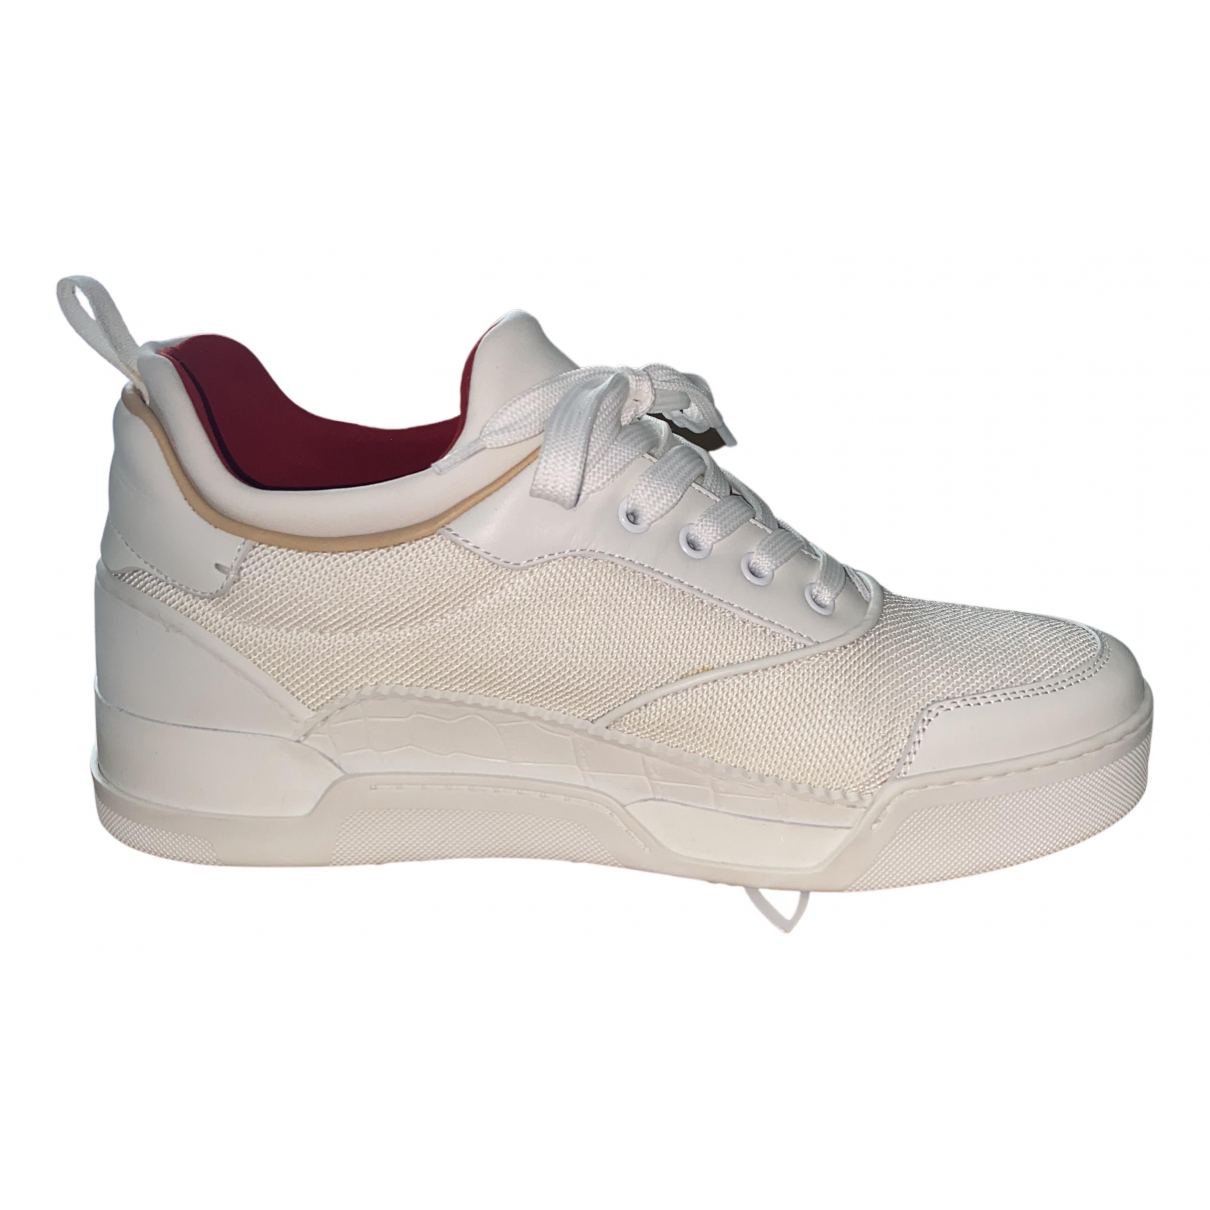 Christian Louboutin N White Cloth Trainers for Men 42 EU